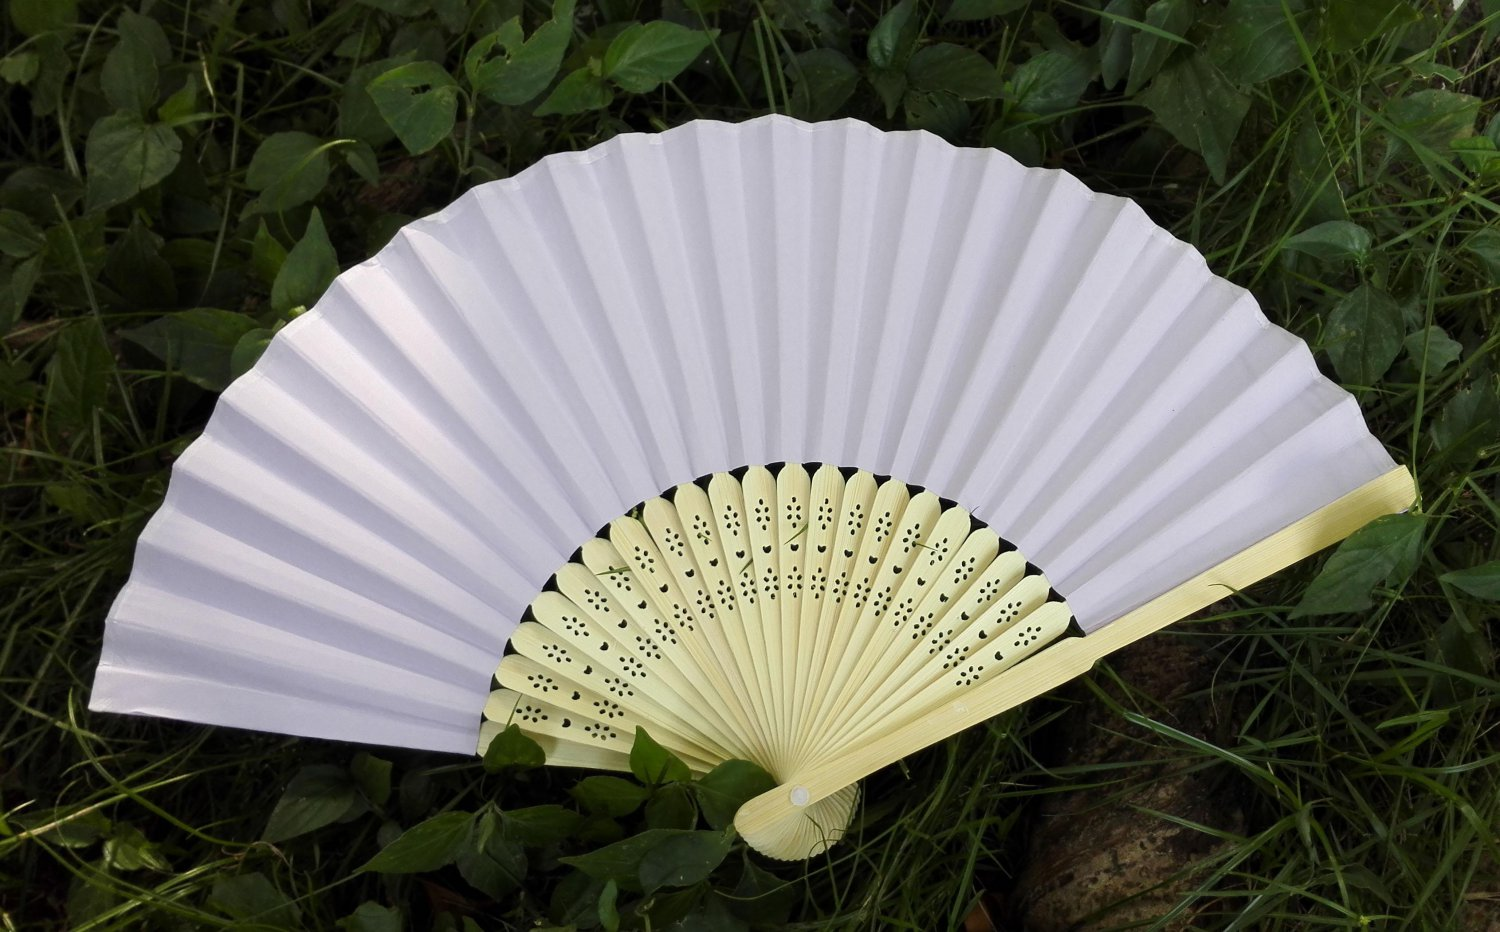 LOT OF 20 Lady's White Paper Hand Fan Wedding & Party